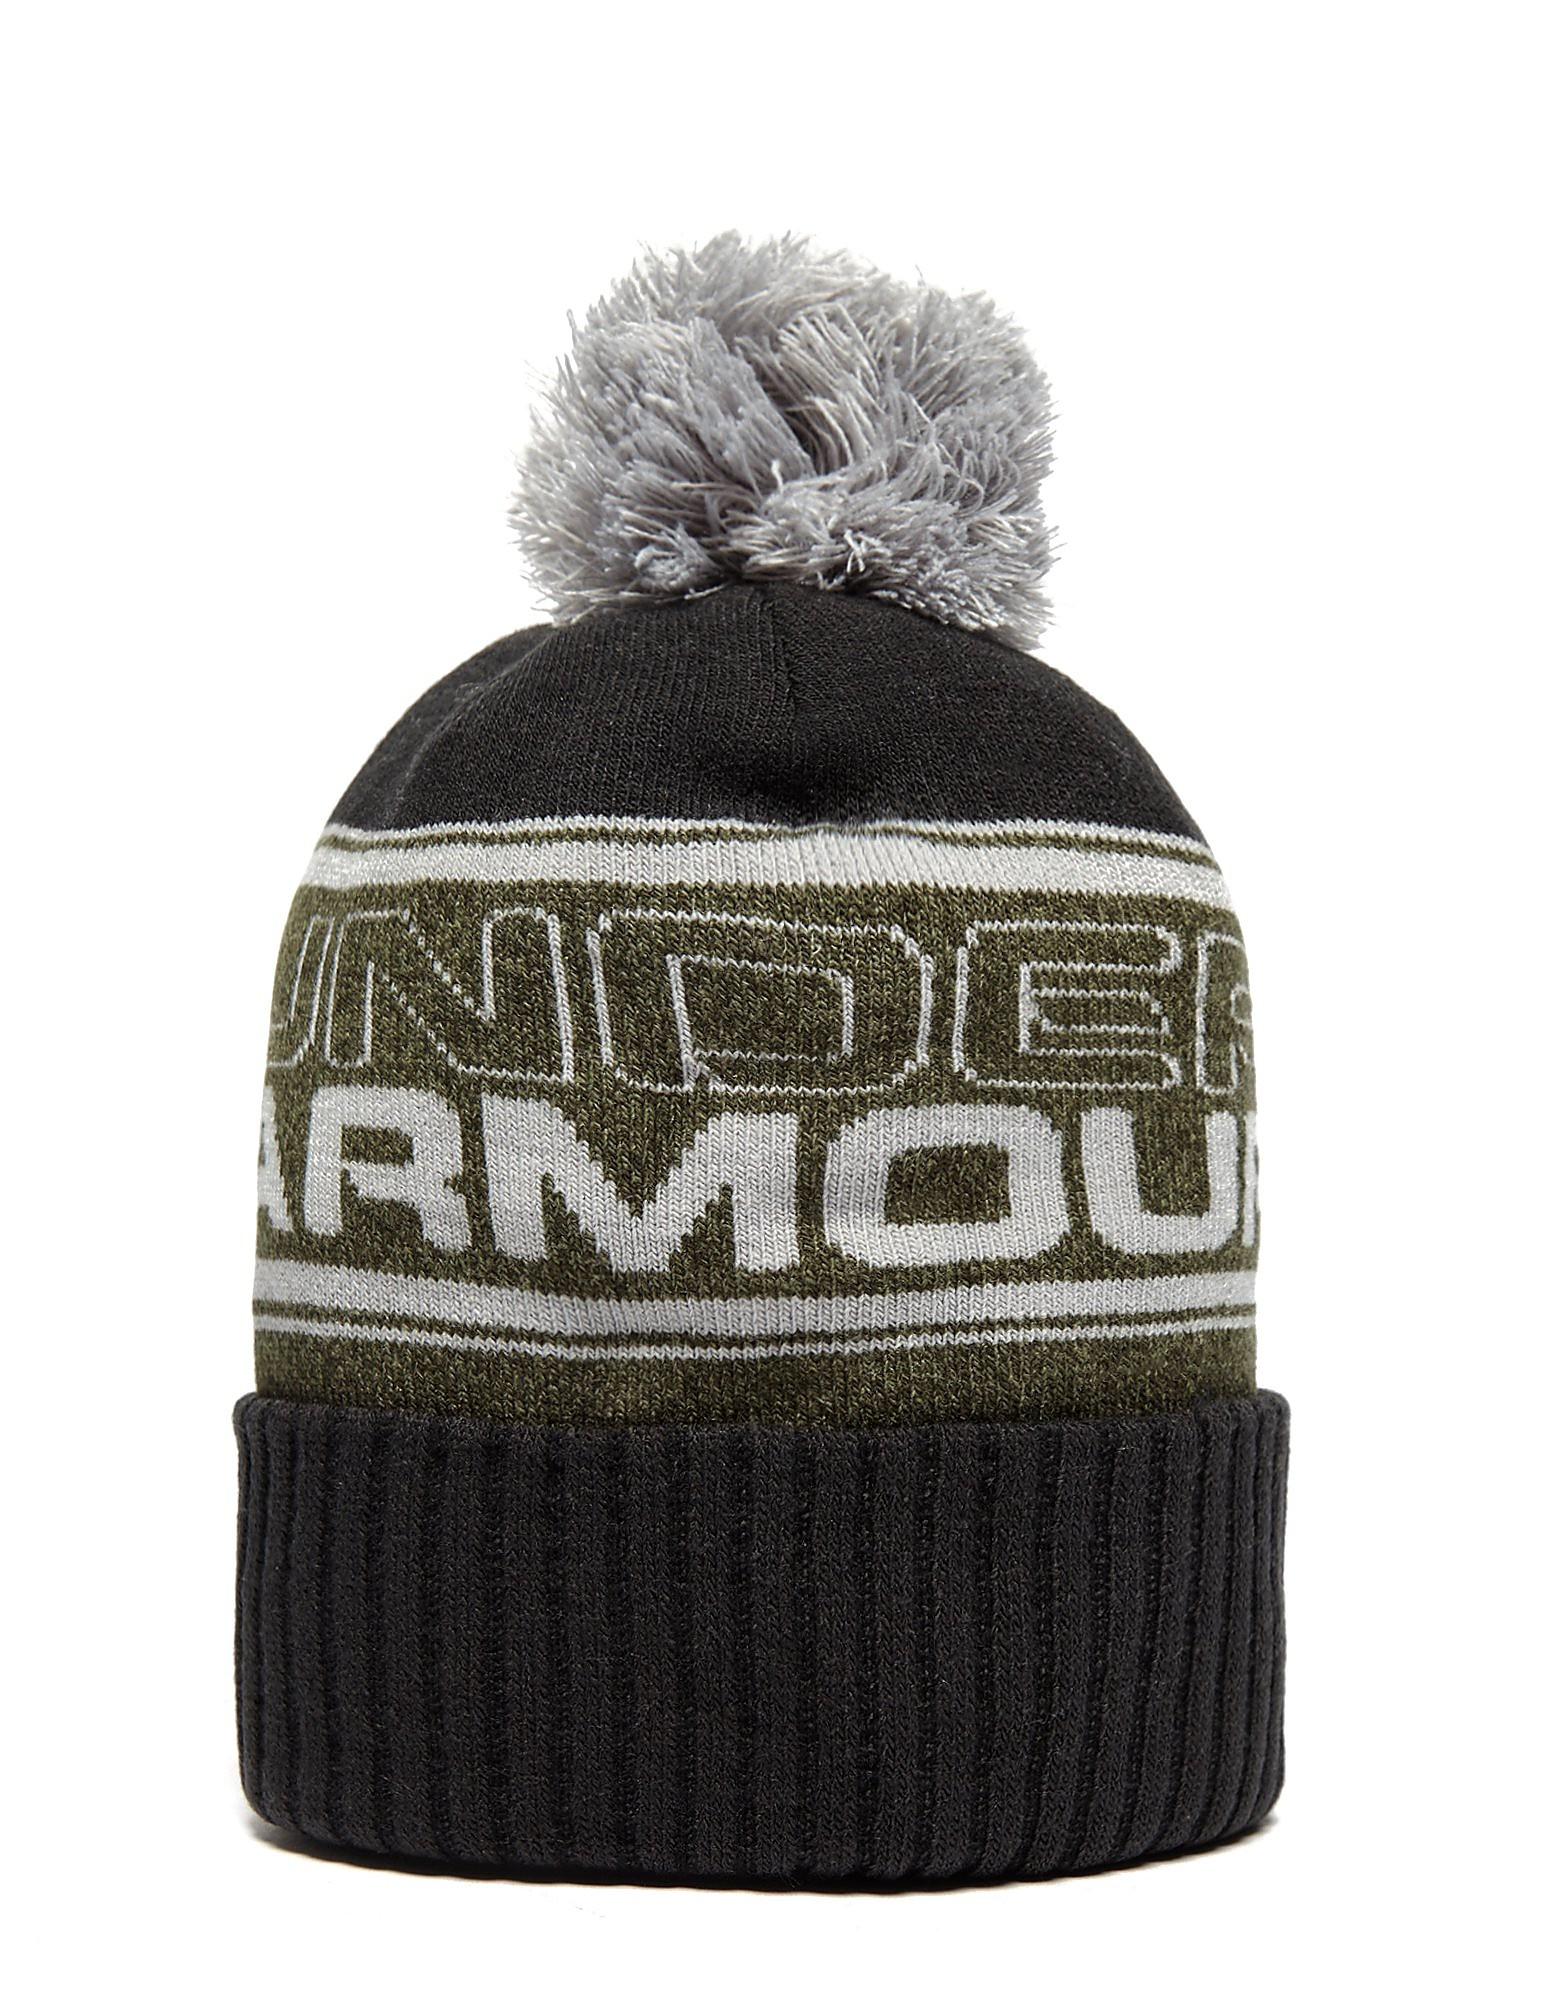 Under Armour Retro Pom Beanie Hat